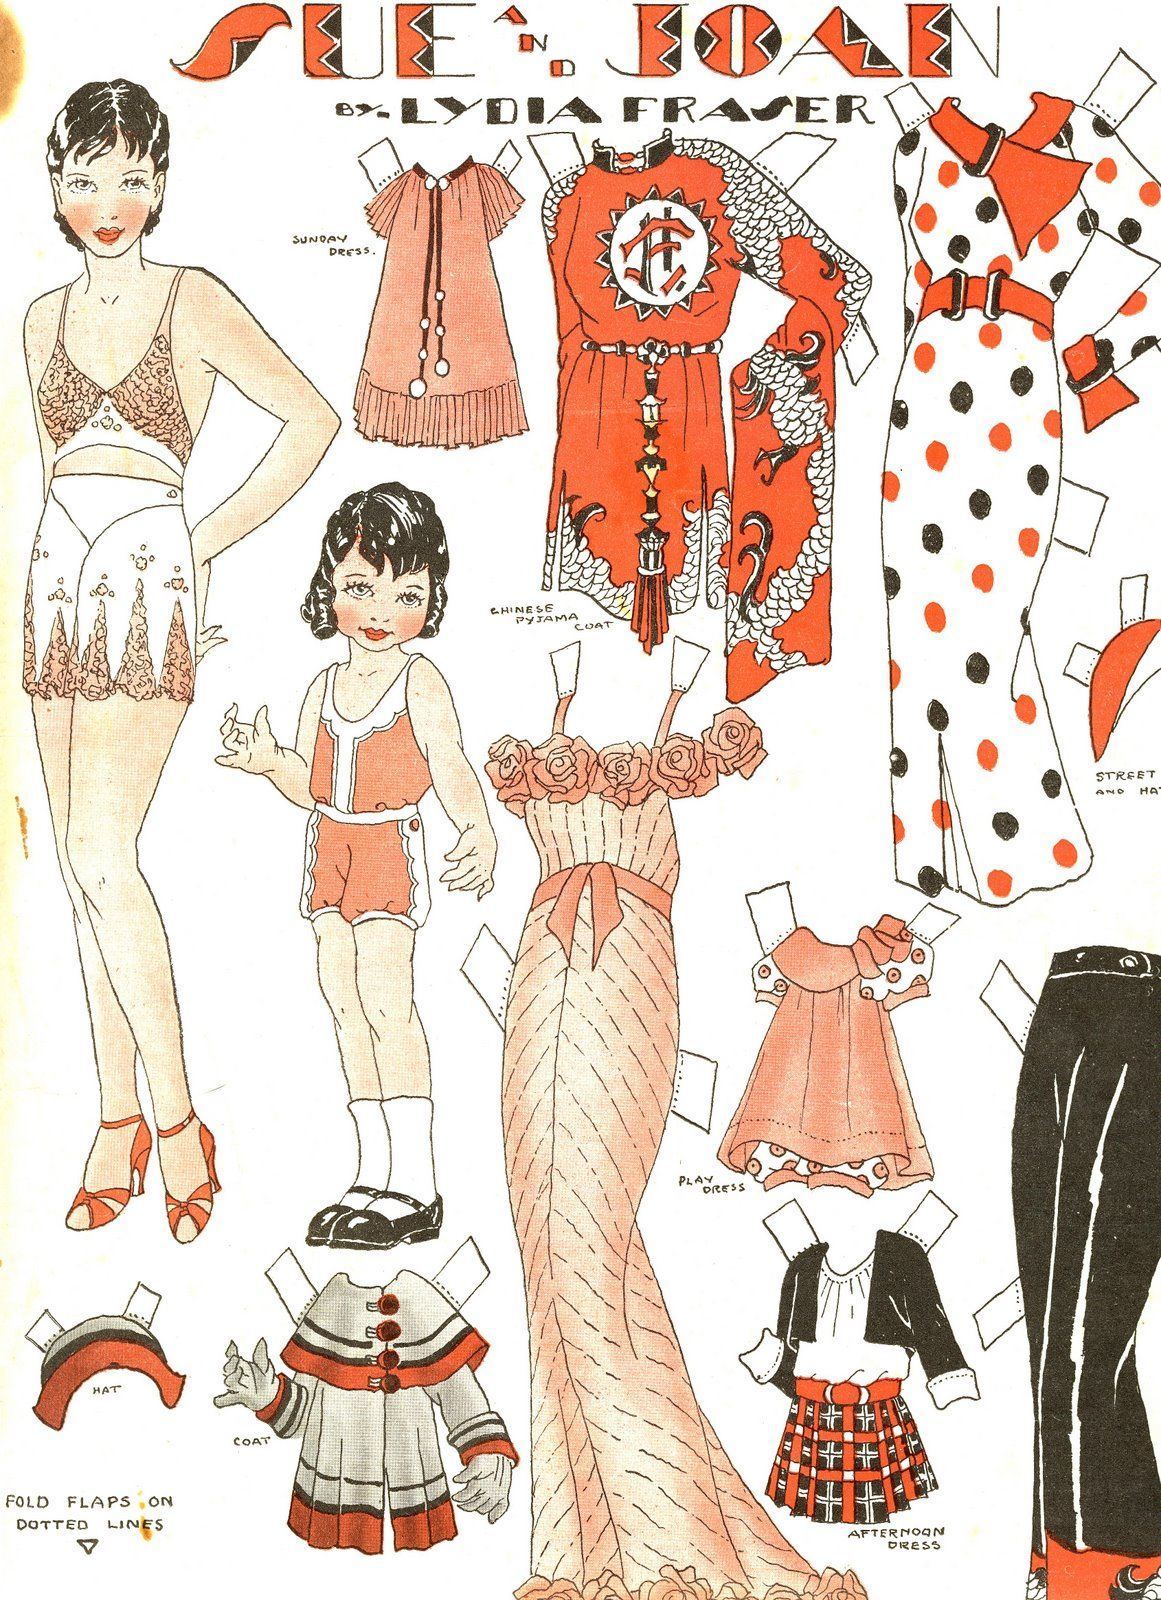 Sue and Joan Paper Dolls by Lydia Fraser, published in the